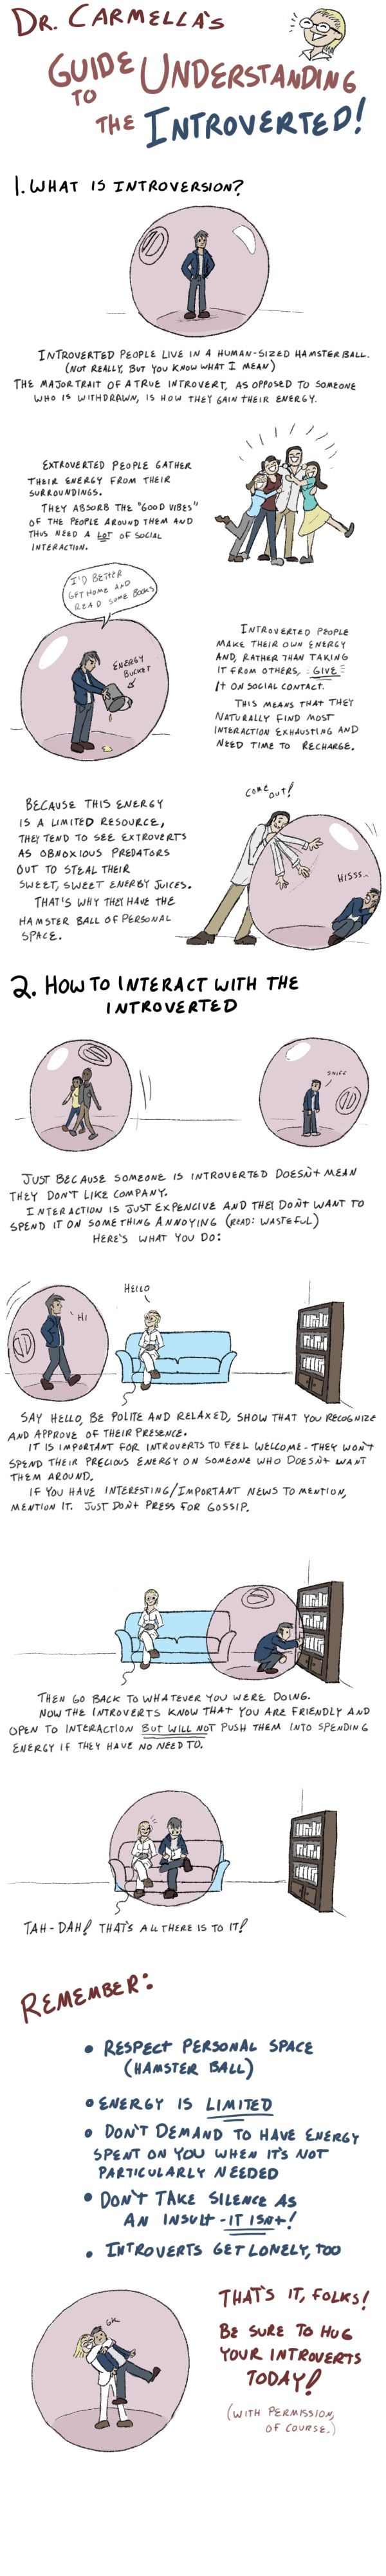 How to understand introverts!